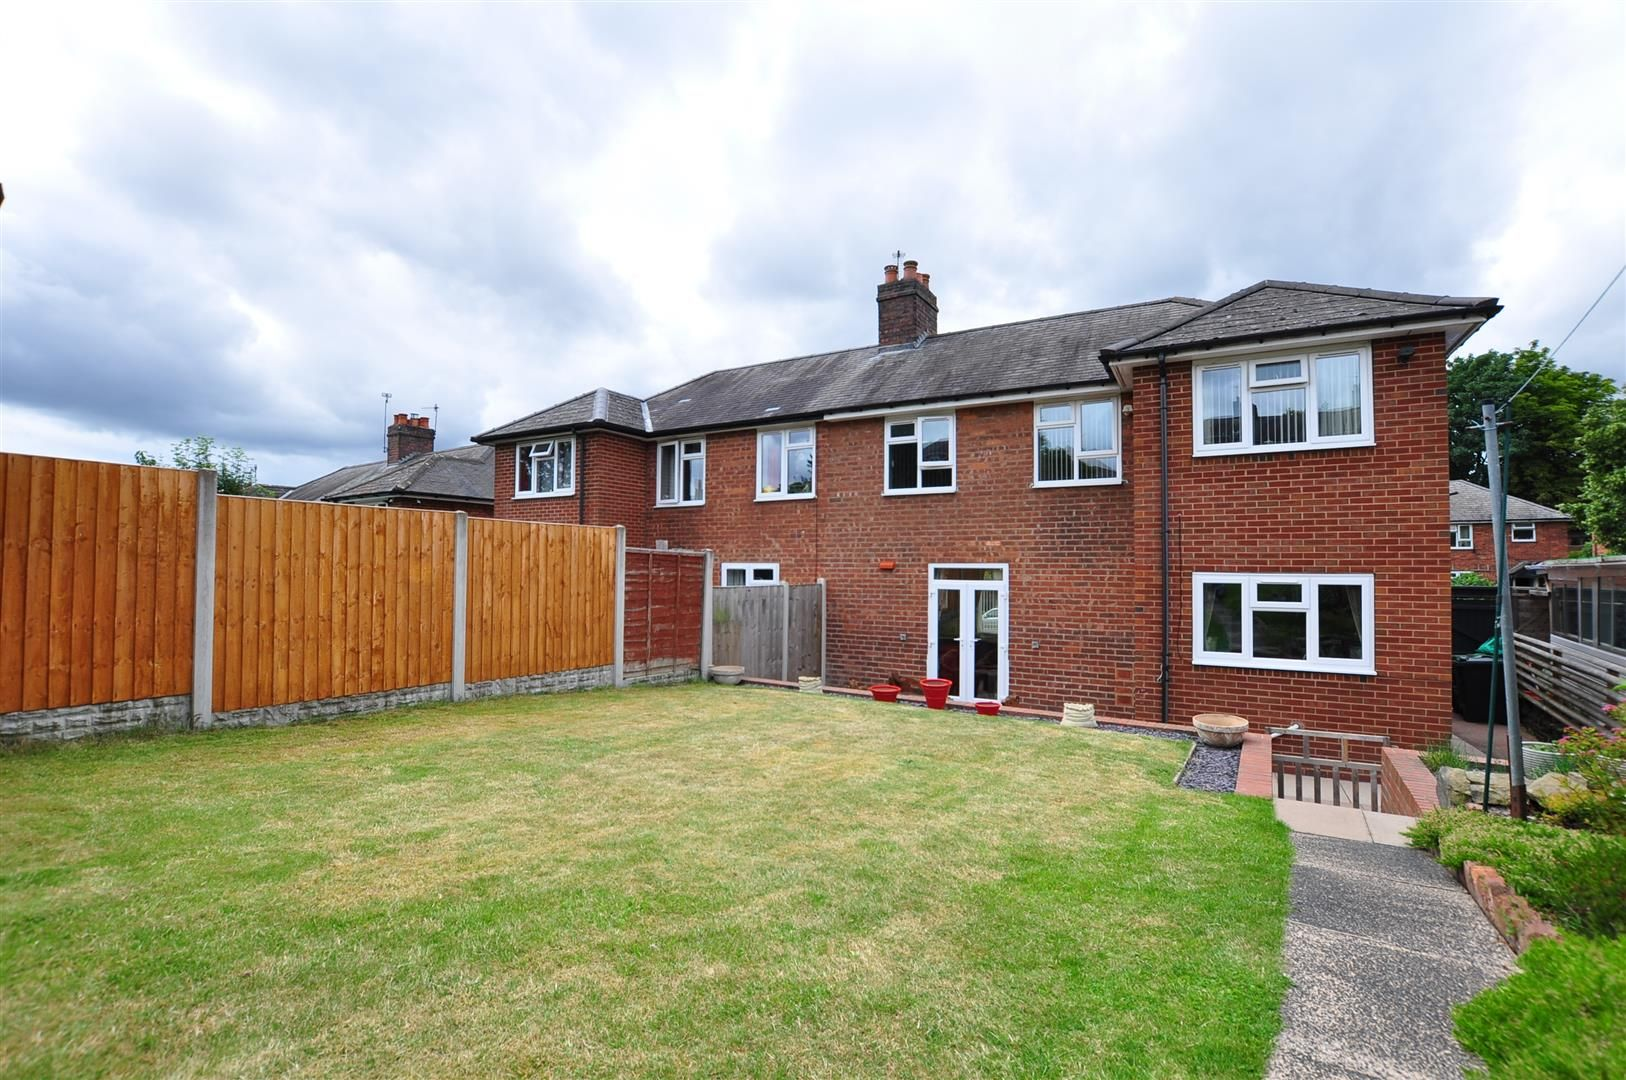 3 bed semi-detached for sale in Lower Gornal 18